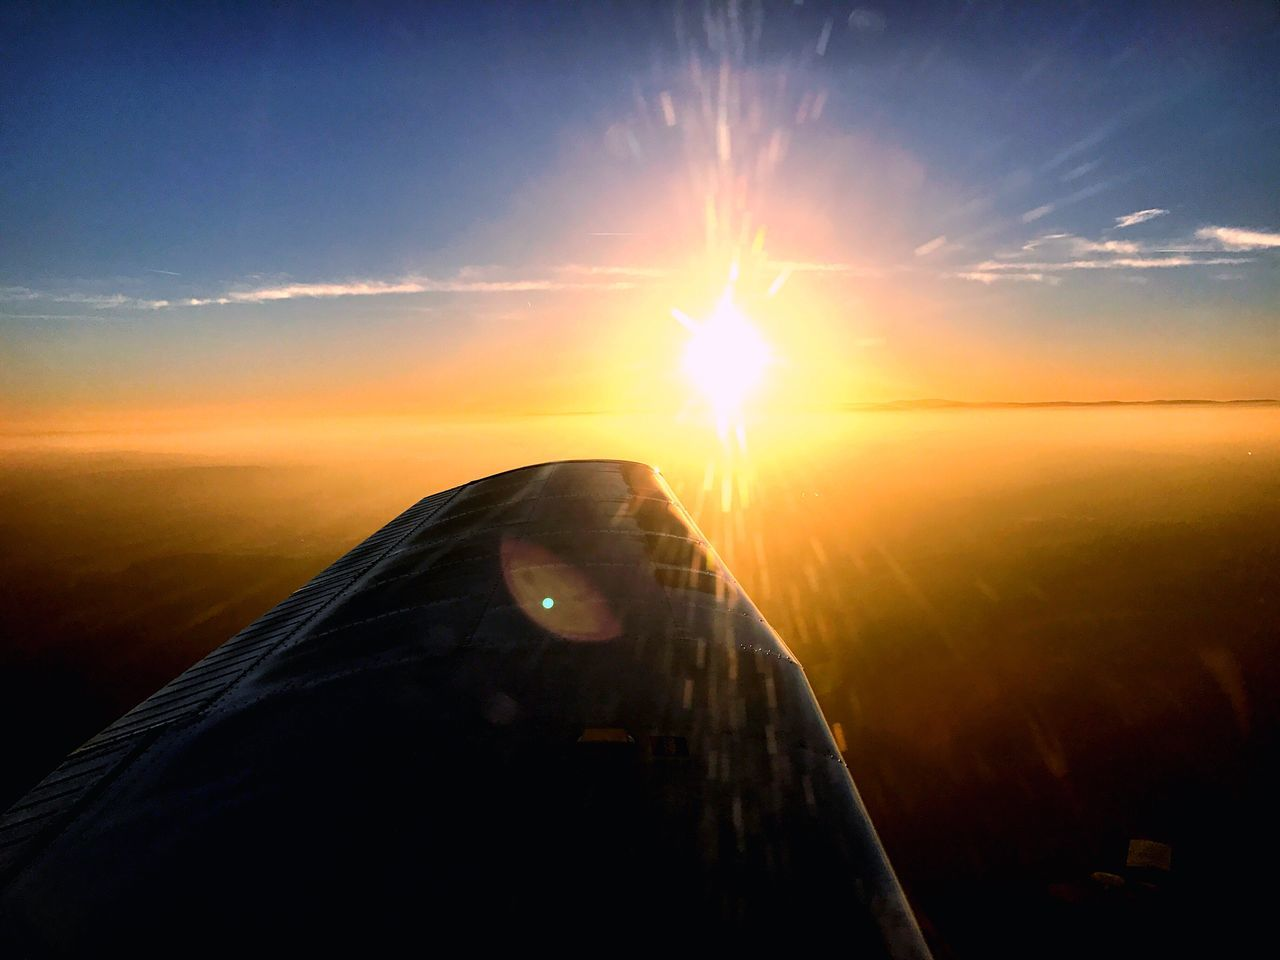 sunset, sun, transportation, lens flare, sky, airplane, sunbeam, no people, travel, sunlight, nature, scenics, journey, beauty in nature, outdoors, mode of transport, aircraft wing, close-up, airplane wing, air vehicle, flying, water, day